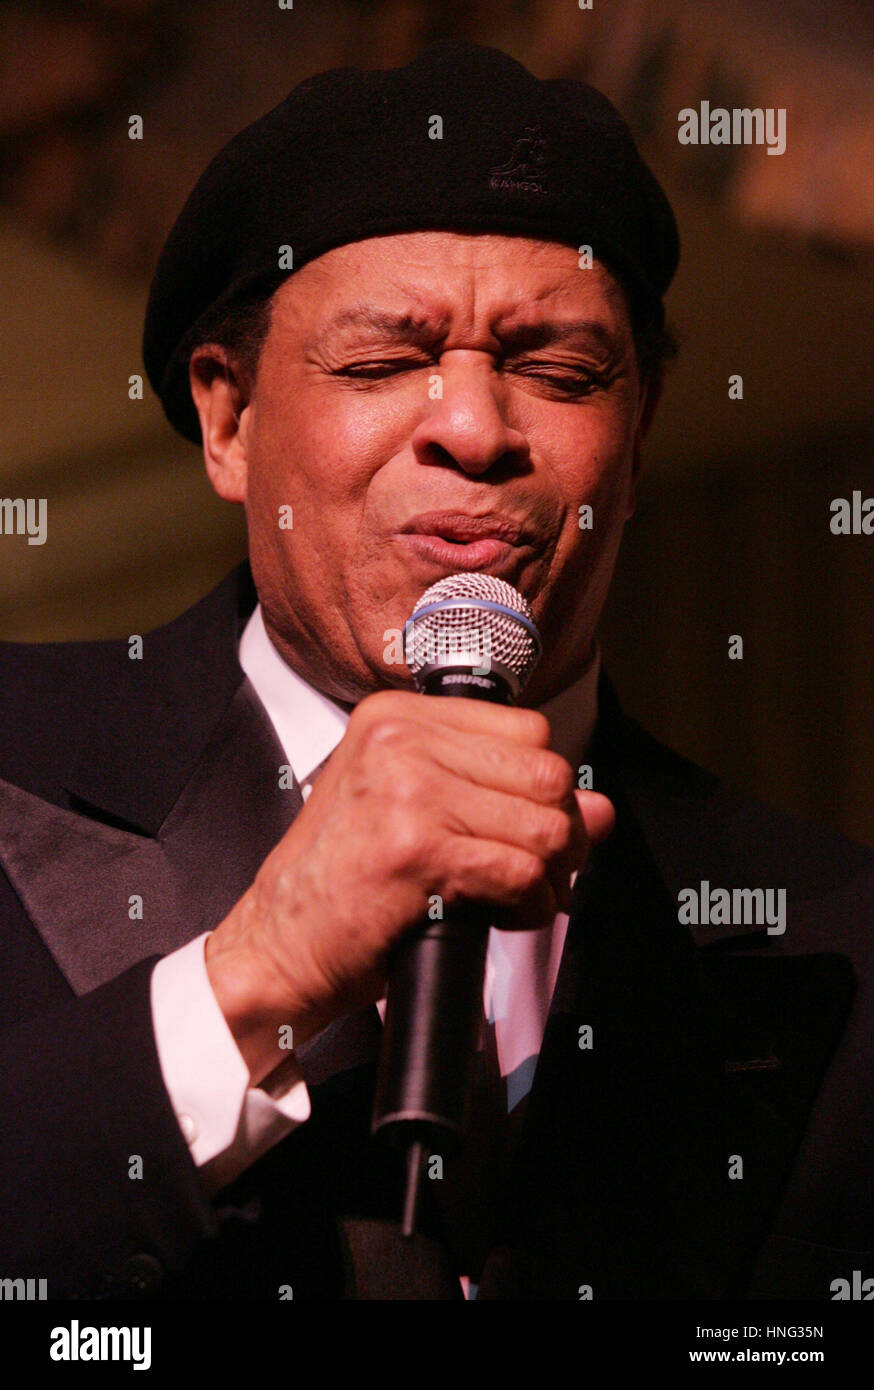 File. 12th Feb, 2017. ALWIN LOPEZ 'AL' JARREAU (March 12, 1940 - February 12, 2017) was an American jazz singer. Stock Photo